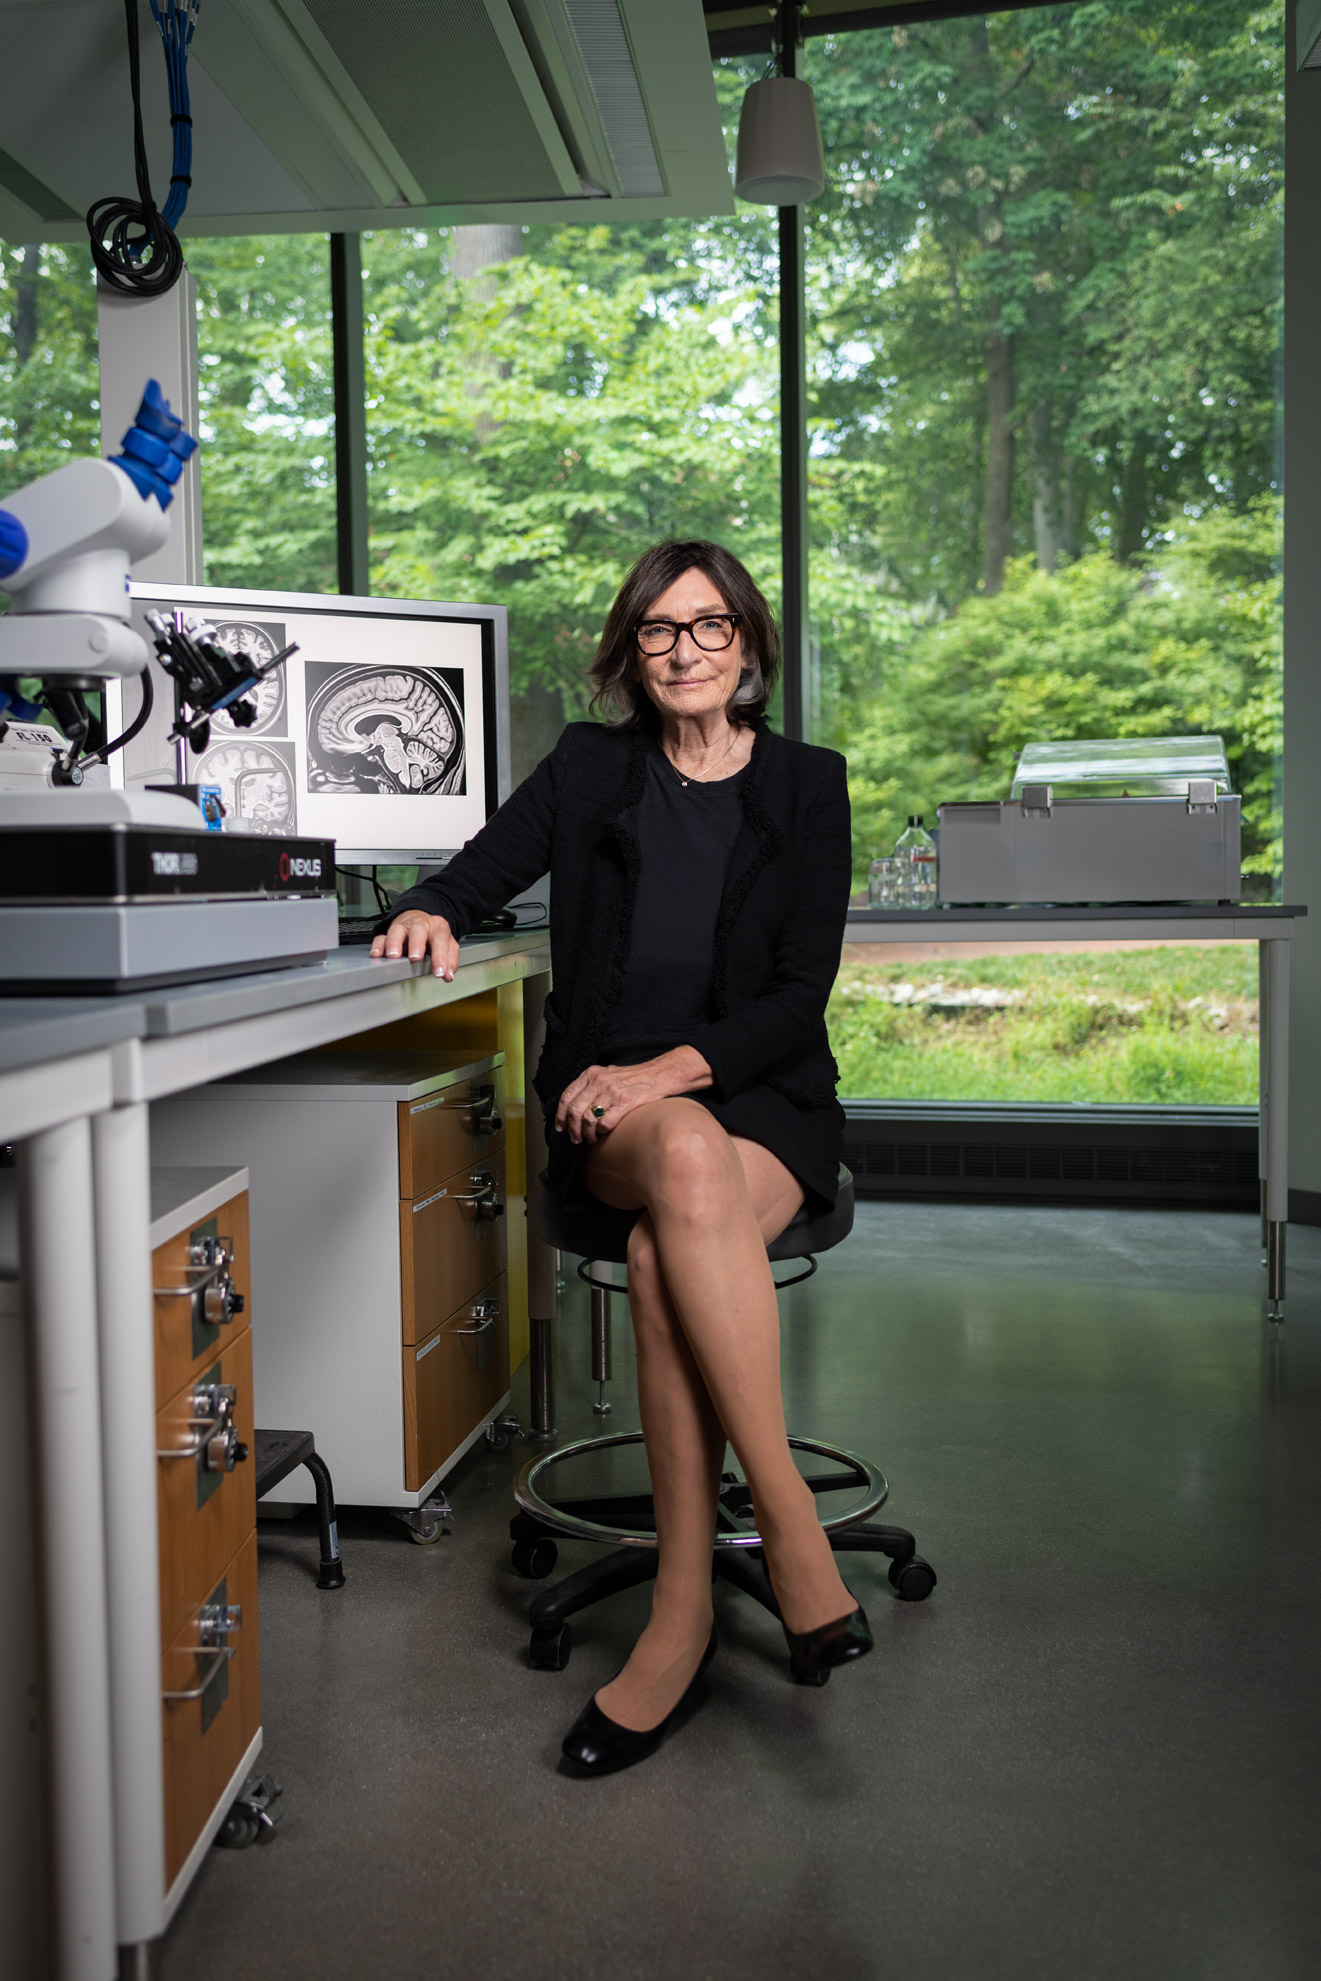 Dr. Michela Gallagher seated in a scientific lab with her legs crossed